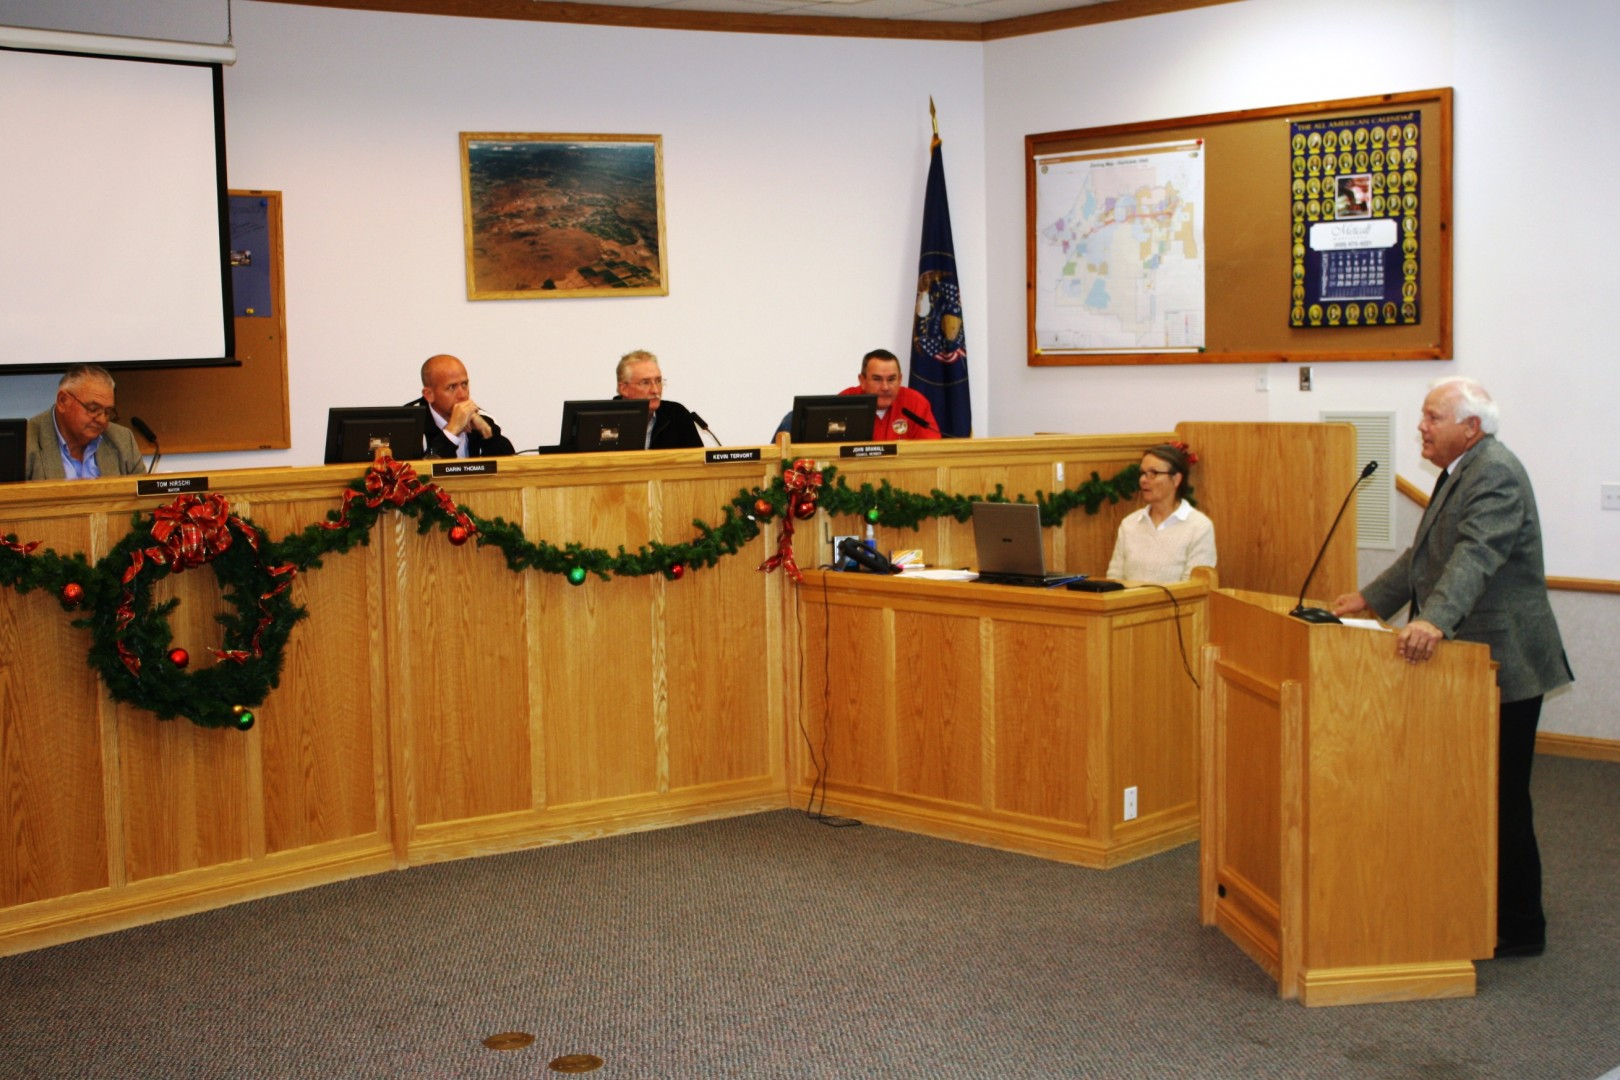 Washington County Commissioner Dennis Drake discusses a proposed 3 percent tax hike on gas with the Hurricane City Council, Hurricane, Utah, Dec. 5, 2013 | Photo by Reuben Wadsworth, St. George News